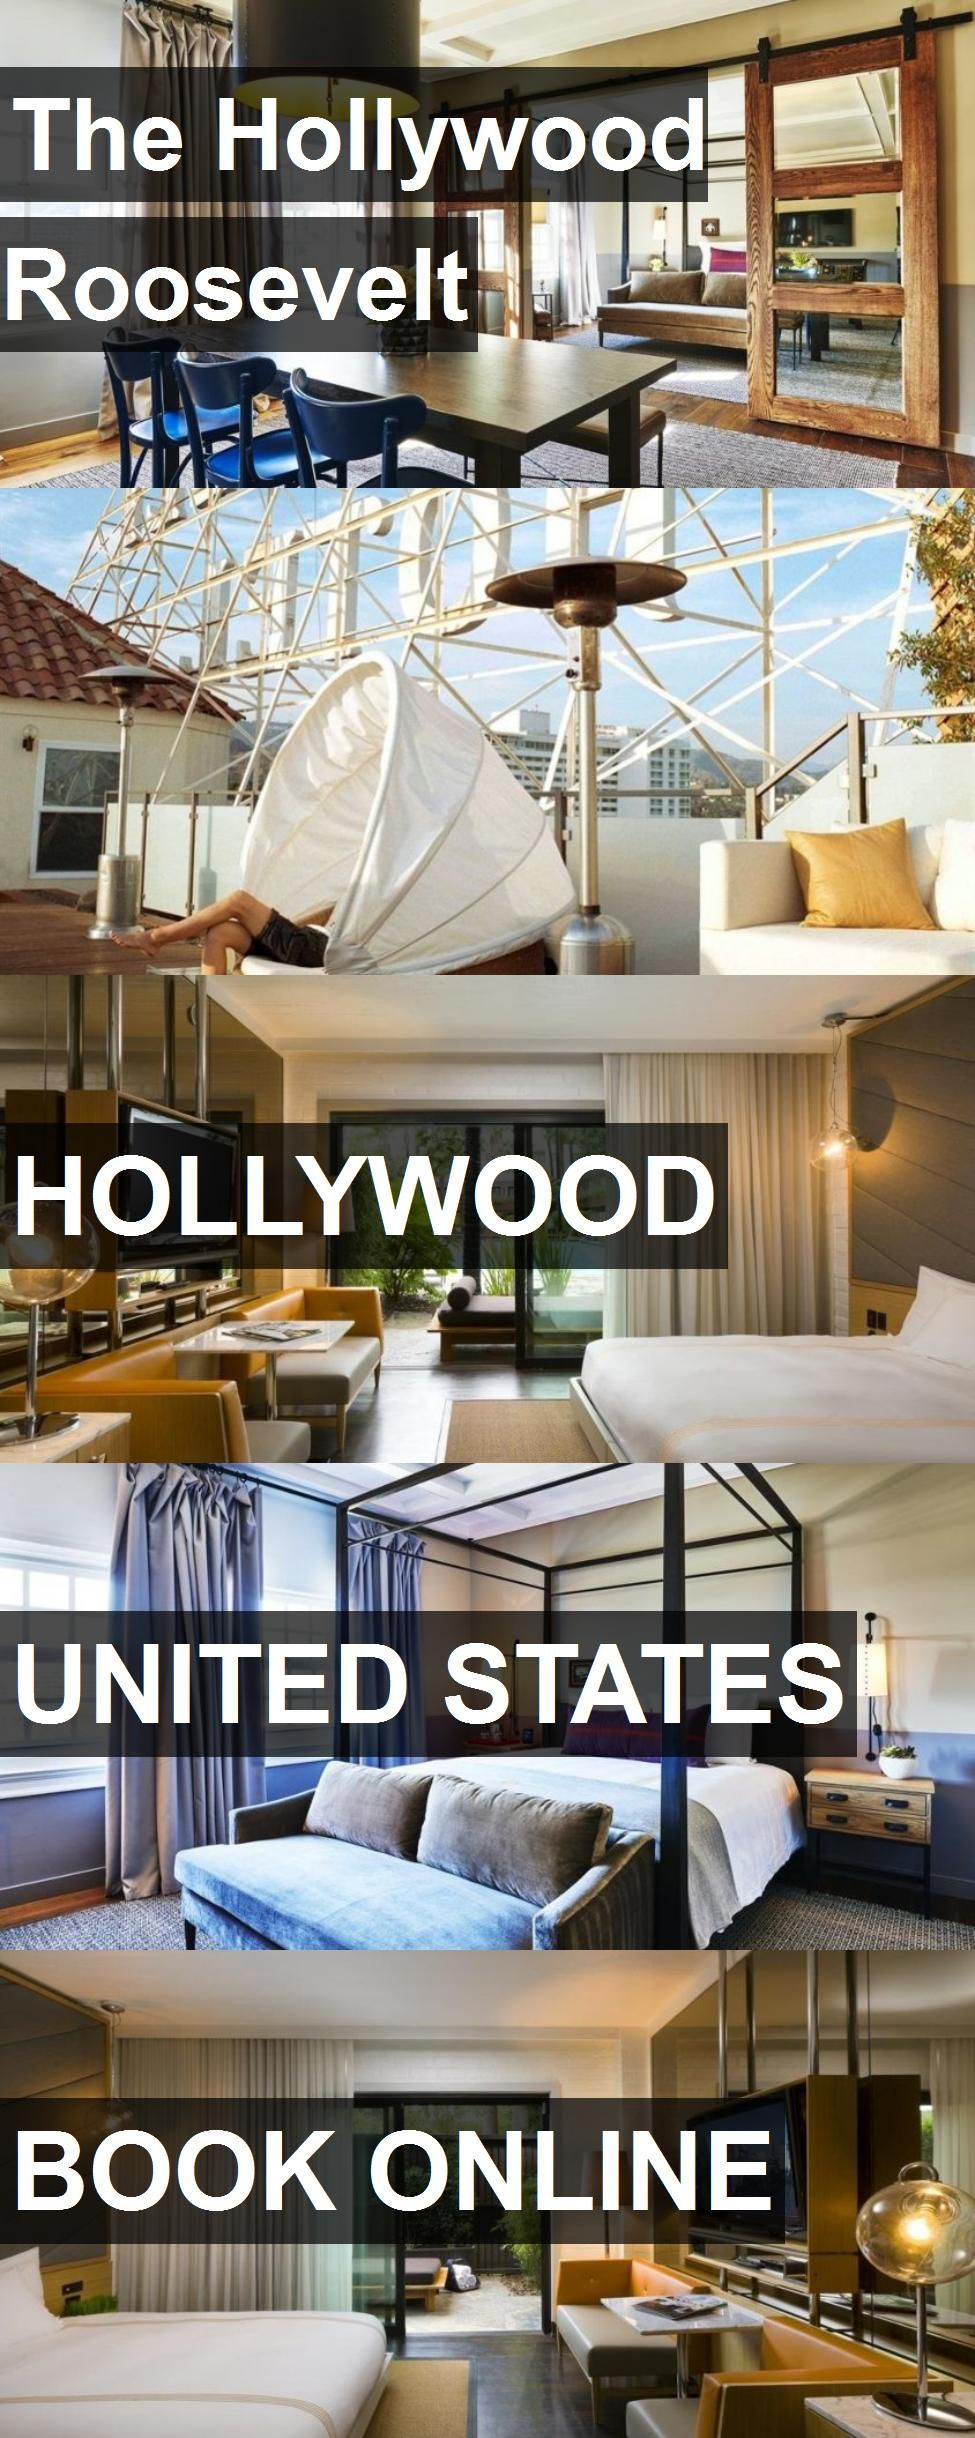 Hotel The Hollywood Roosevelt In Hollywood, United States